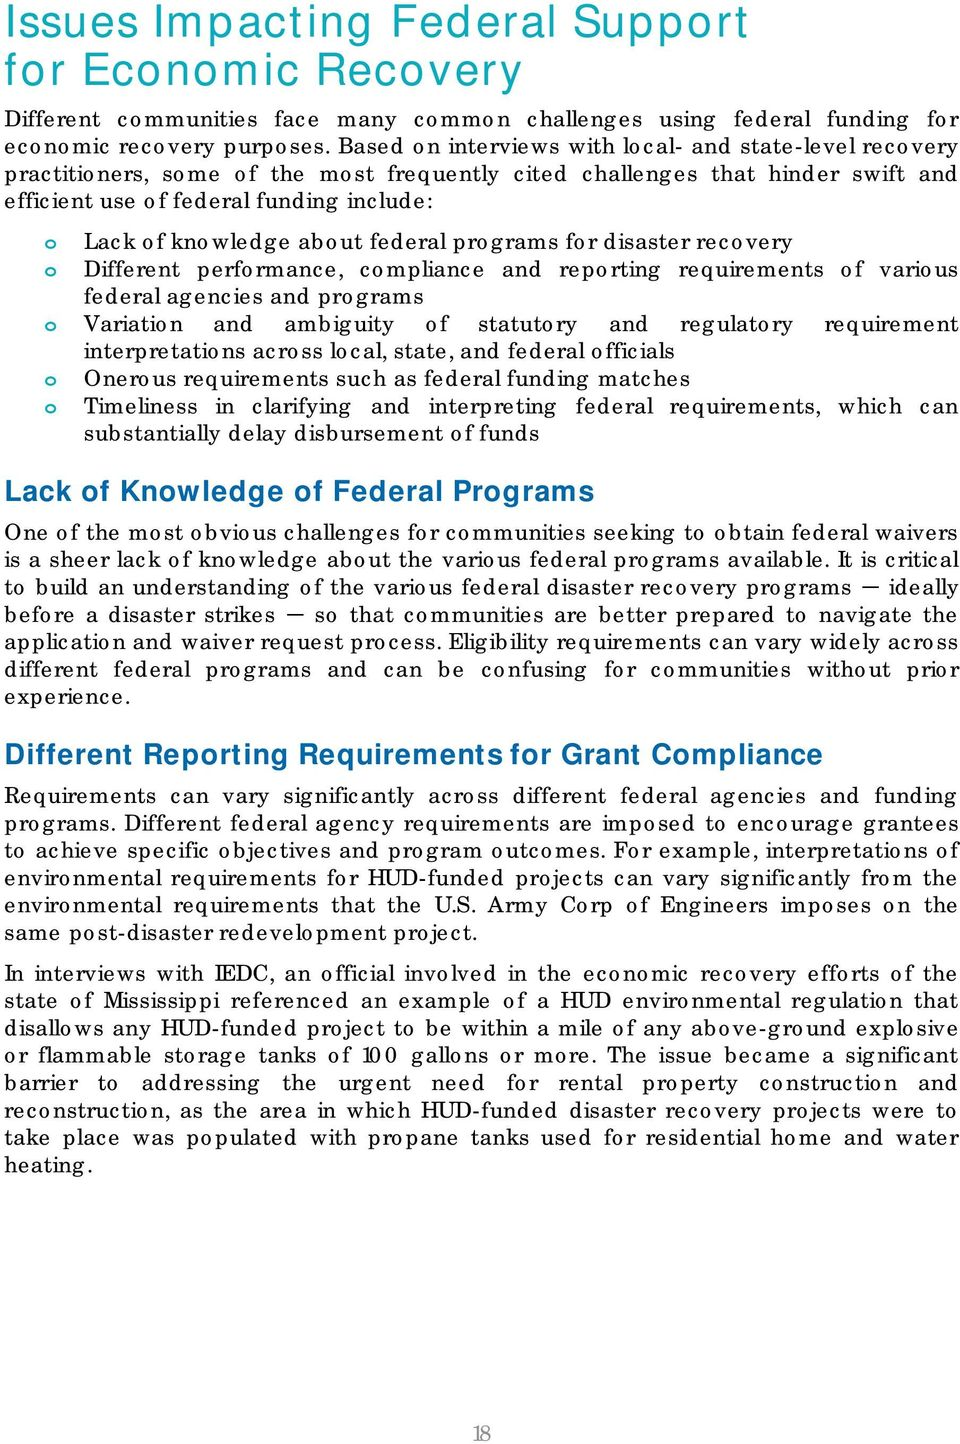 federal prgrams fr disaster recvery Different perfrmance, cmpliance and reprting requirements f varius federal agencies and prgrams Variatin and ambiguity f statutry and regulatry requirement